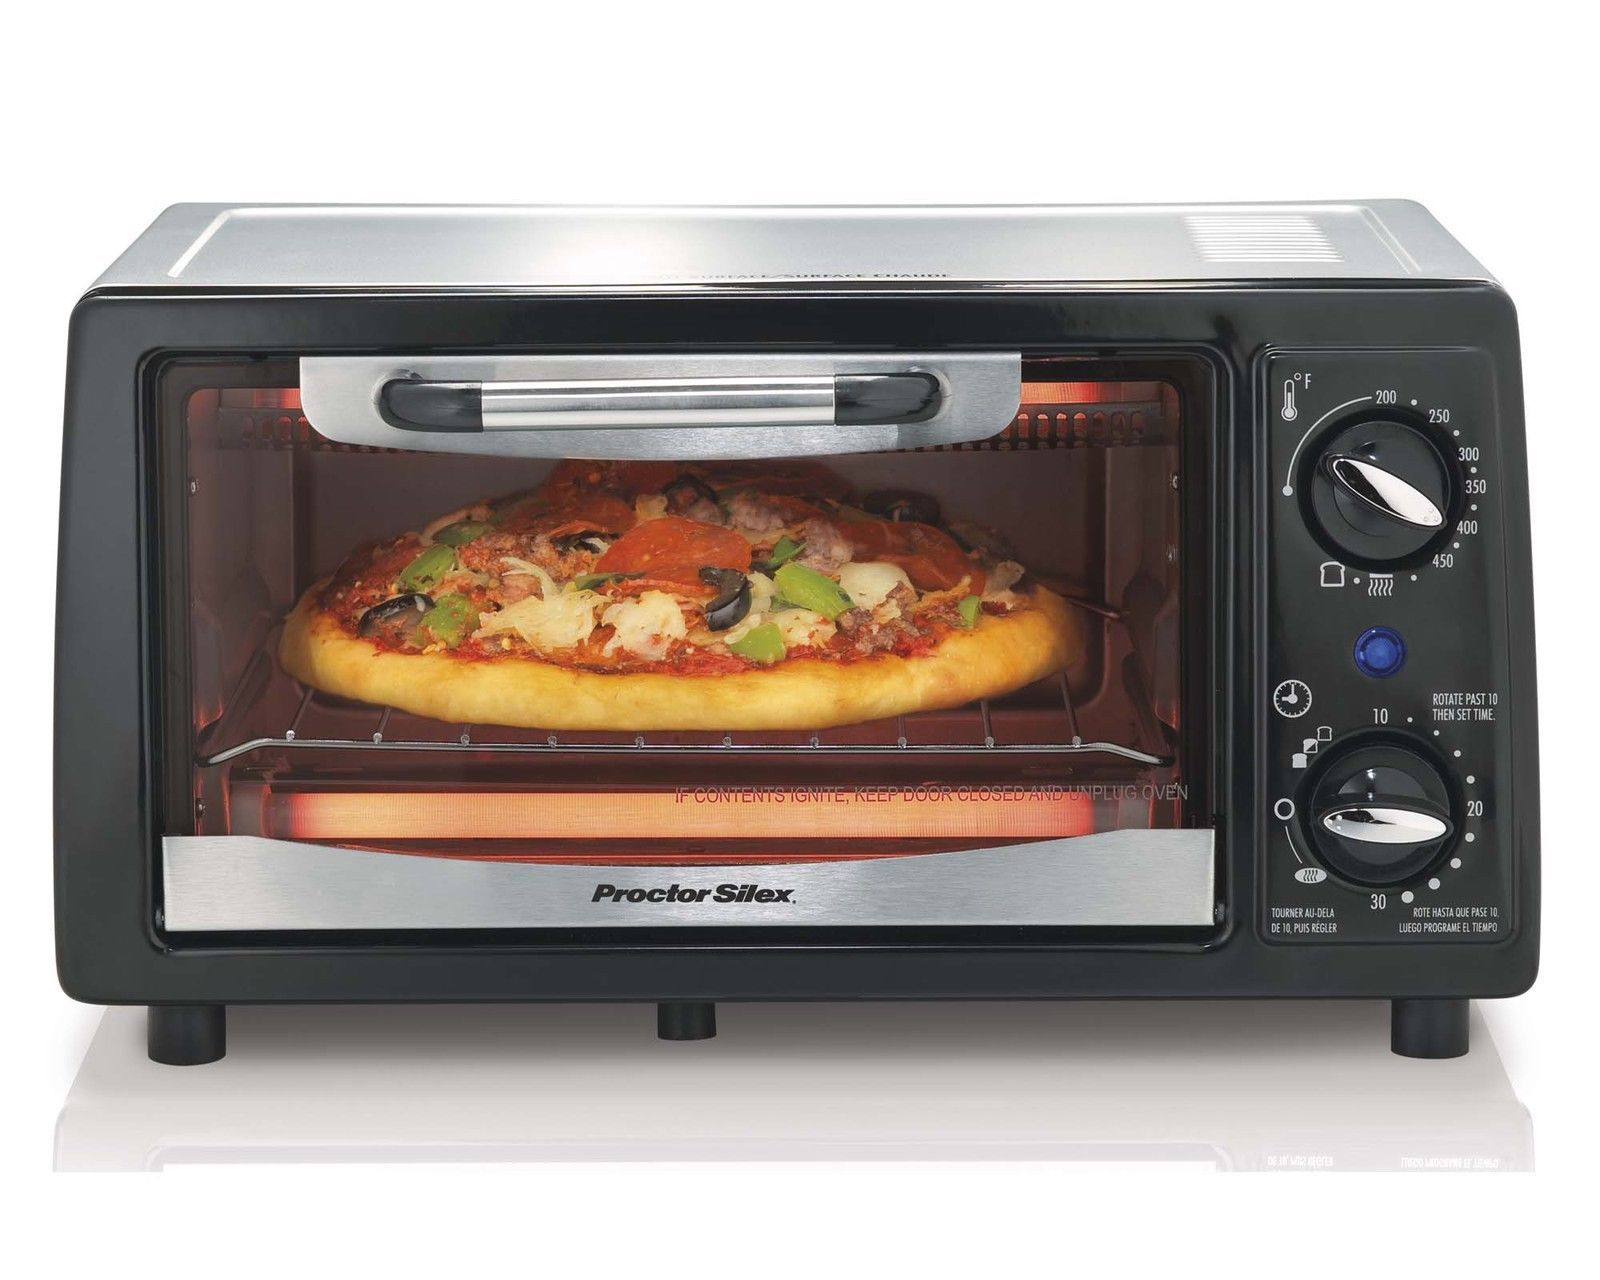 Proctor Silex 31140 4-Slice Electric Counter-Top Toaster Oven With Timer